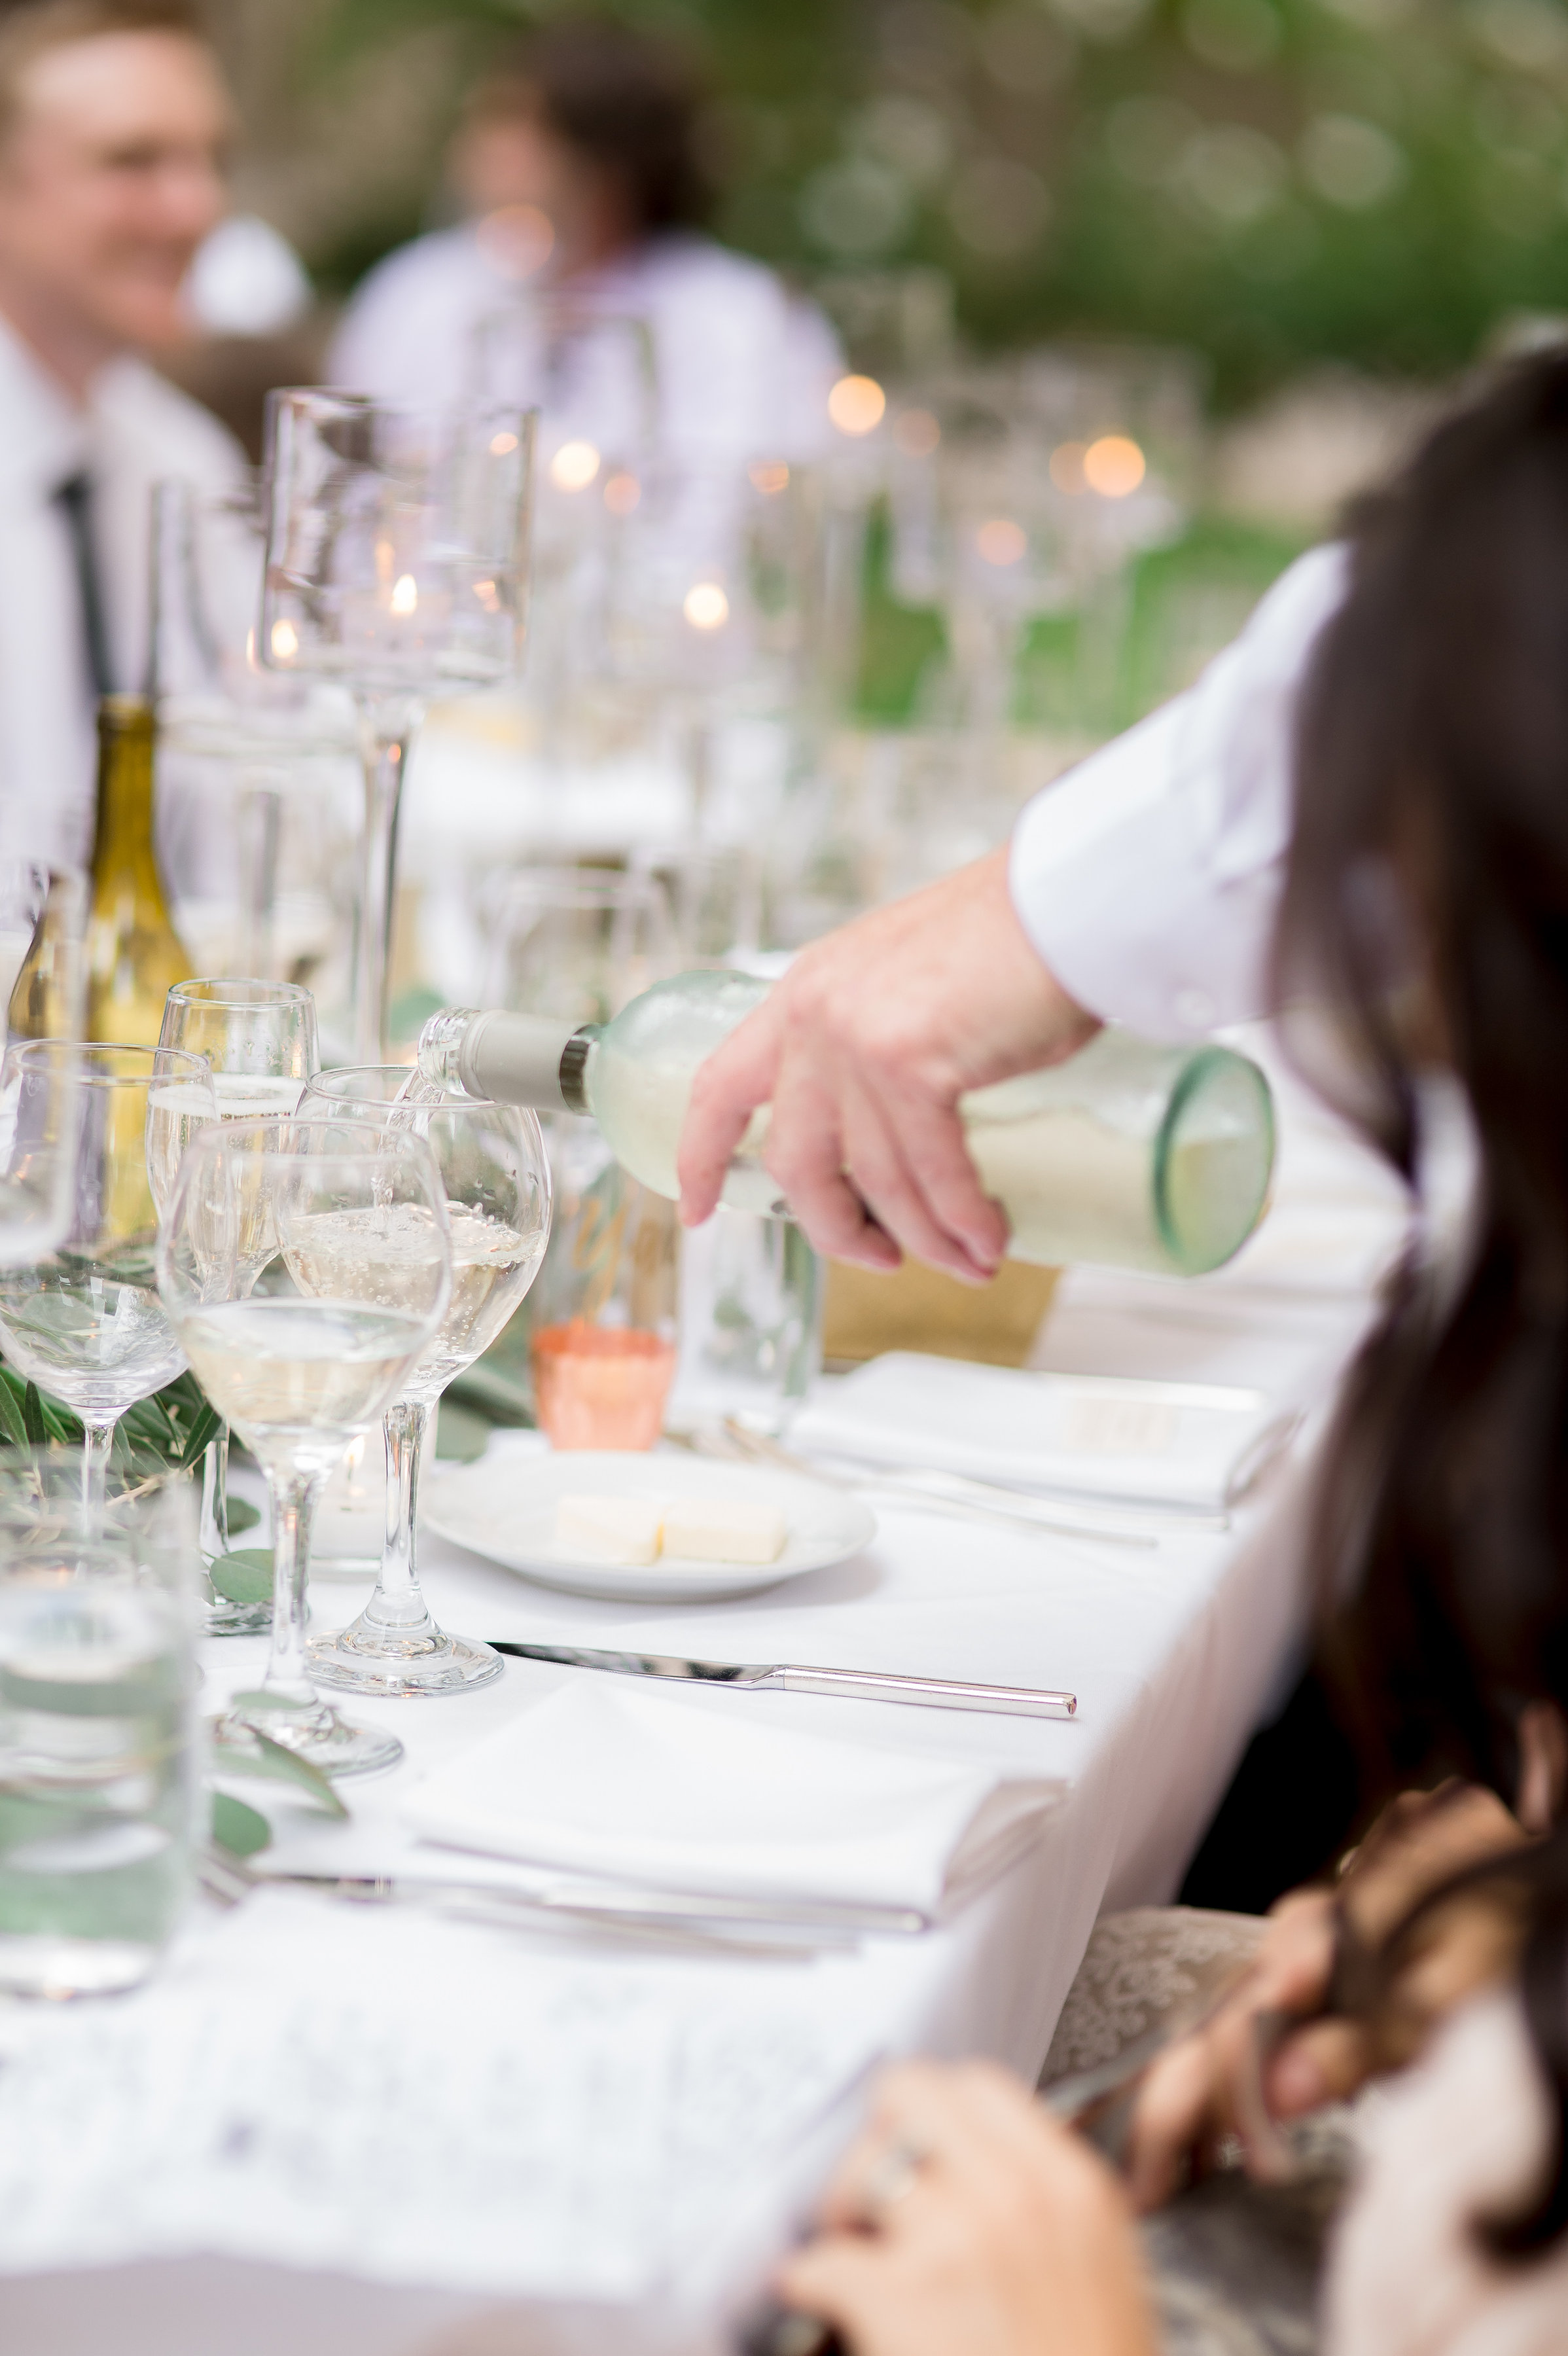 socal-wedding-consultant-best-wedding-planners-in-southern-california-cafe-pinot-wedding-planner72.jpg